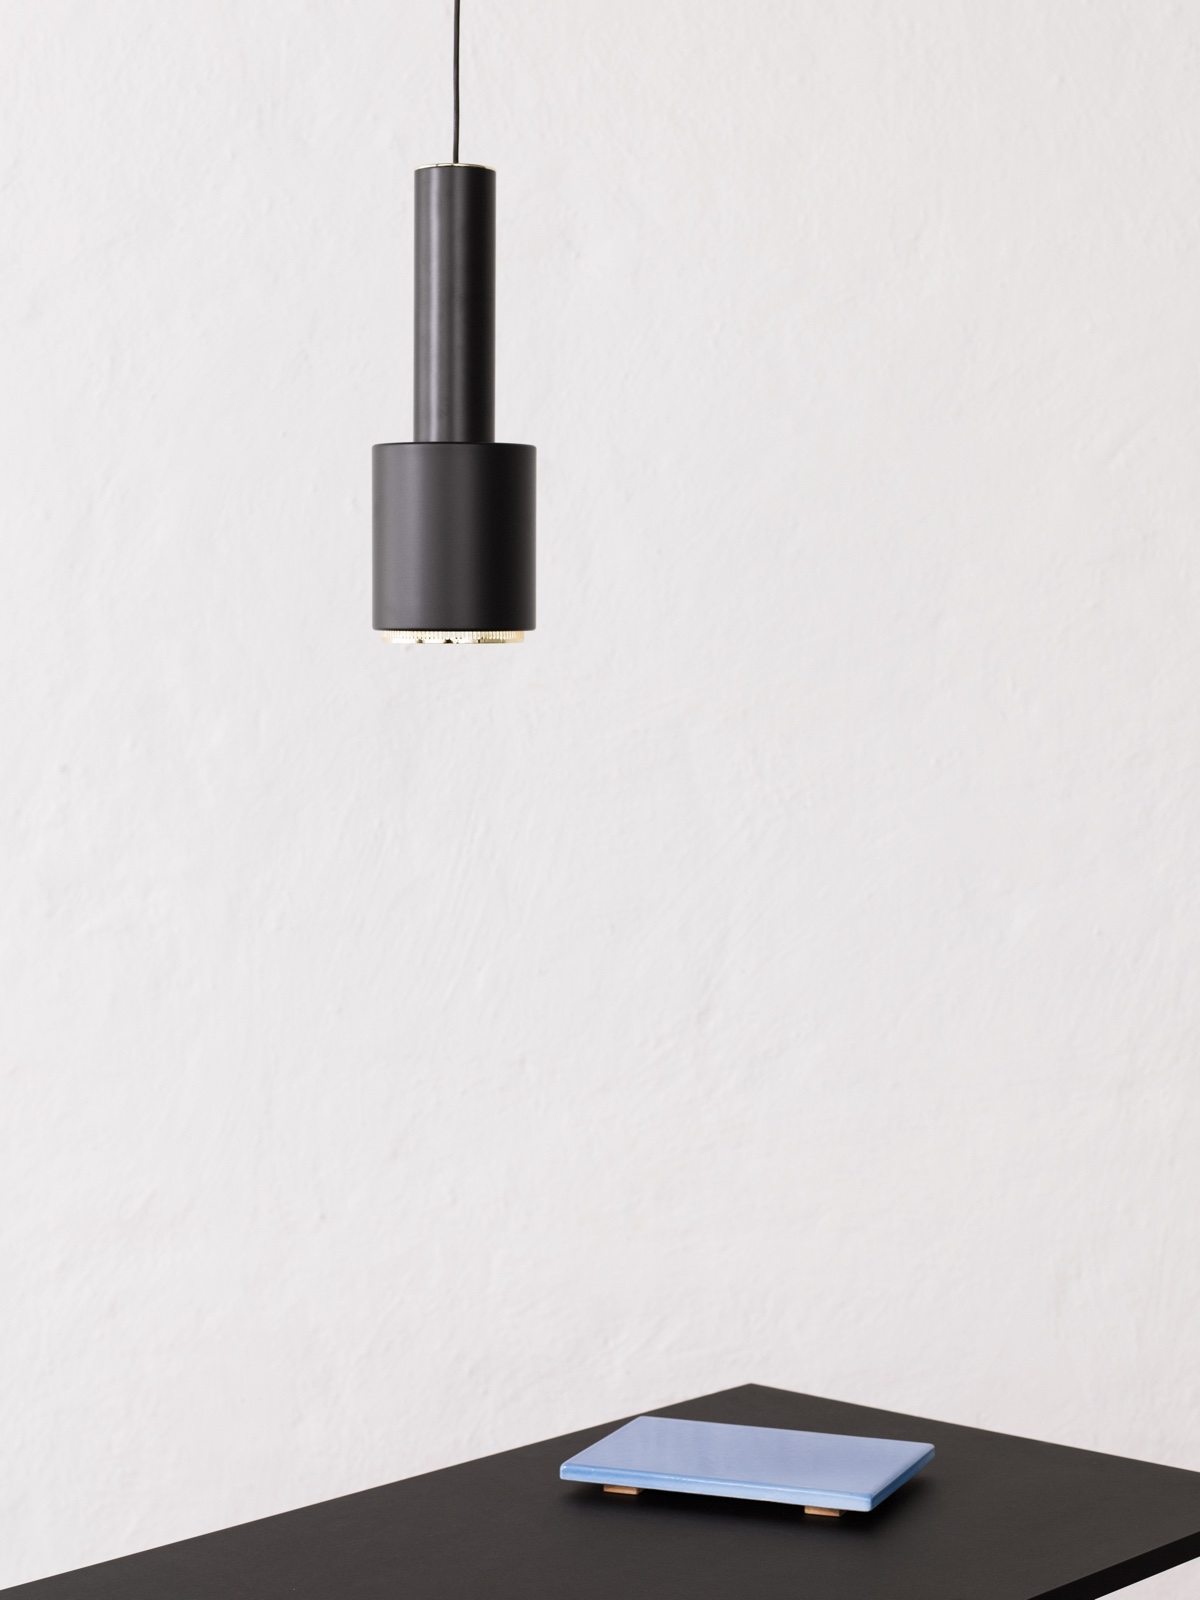 Pendant Light A110, black painted steel shade, designed in 1952. Photo by Osma Harvilahti. Also known as theHand Grenade lamp, itwas designed for the homeof the Finnish Engineers' Association (designed by Aalto between 1948 and 1953).